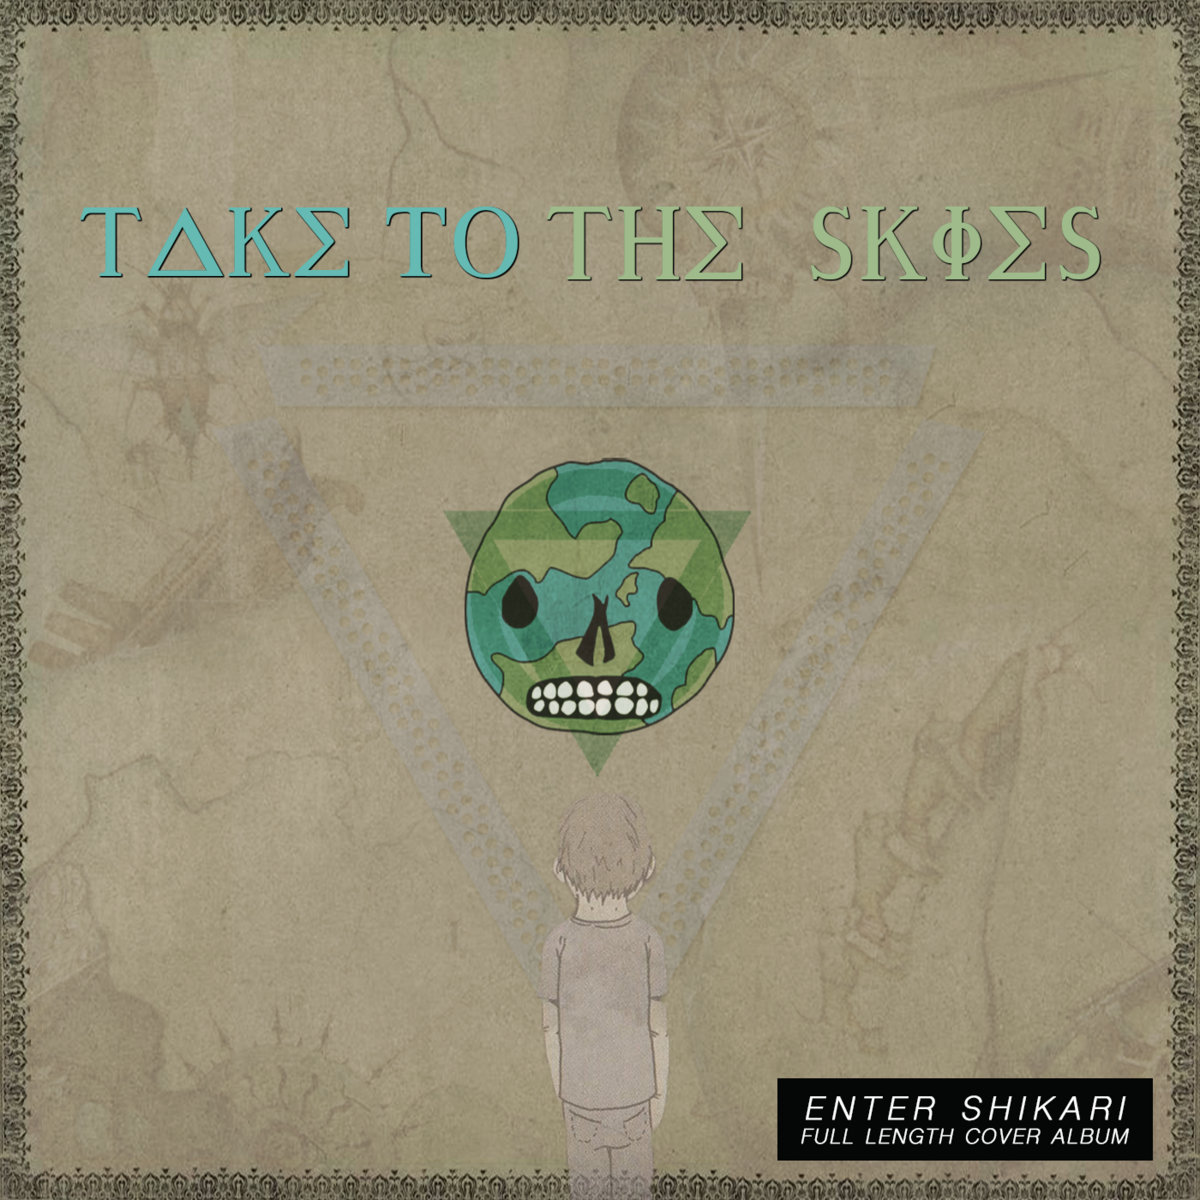 Take to the Skies - Take to the Skies [Enter Shikari cover album] (2017)